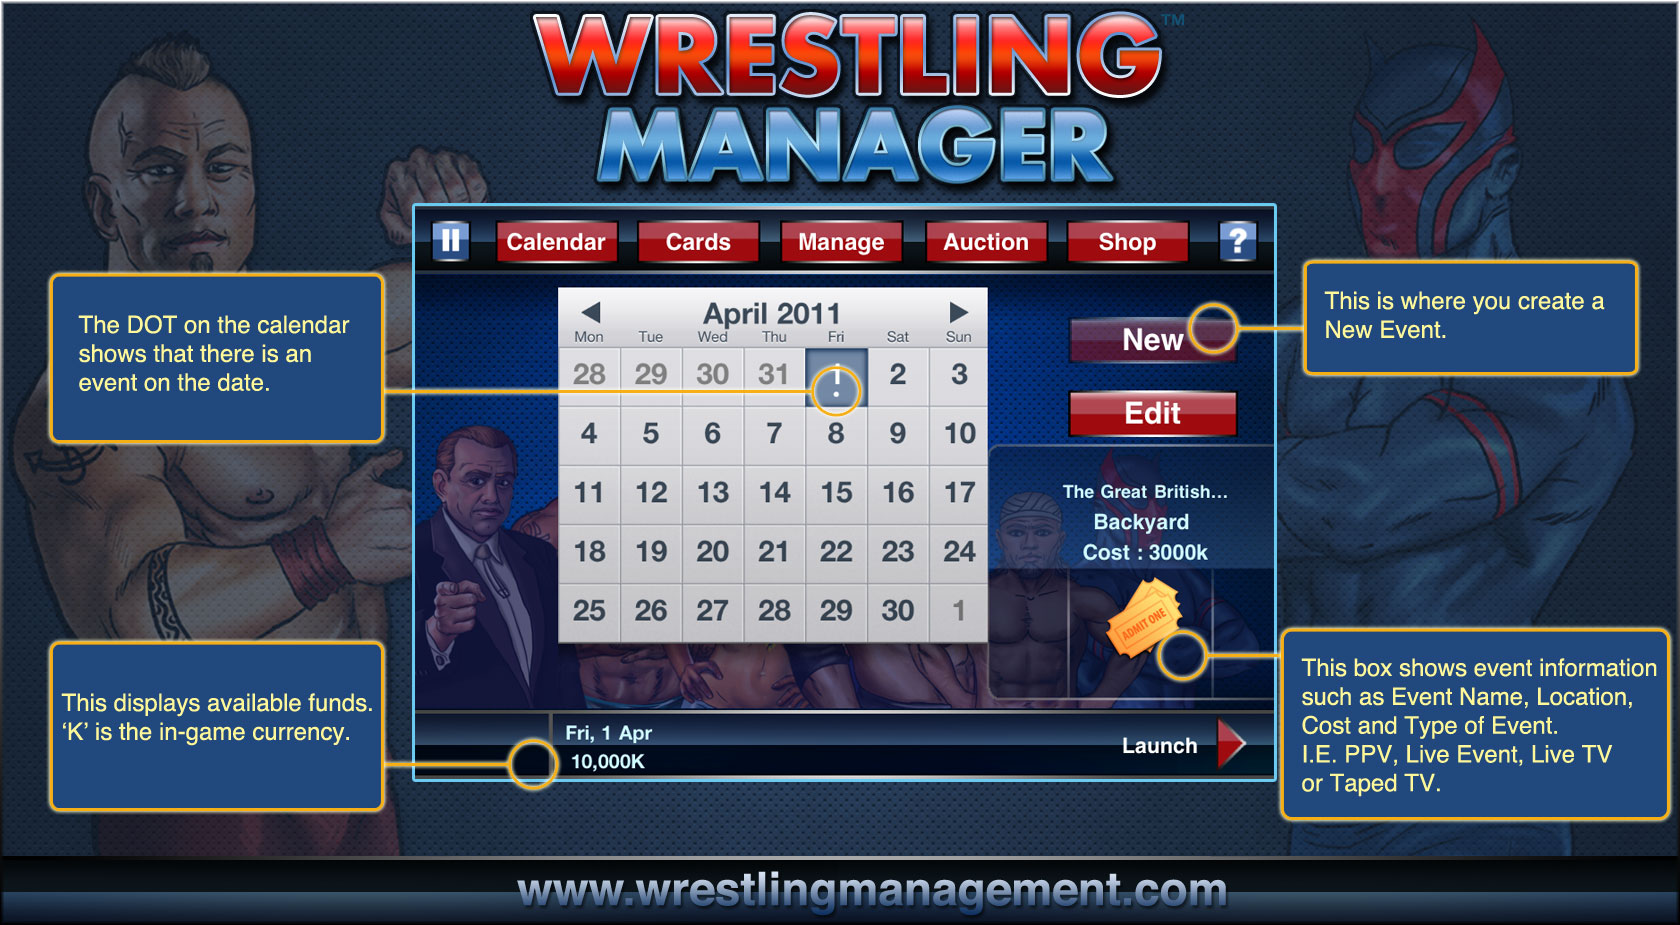 wrestlingnewssource com featured in wrestling manager ios game